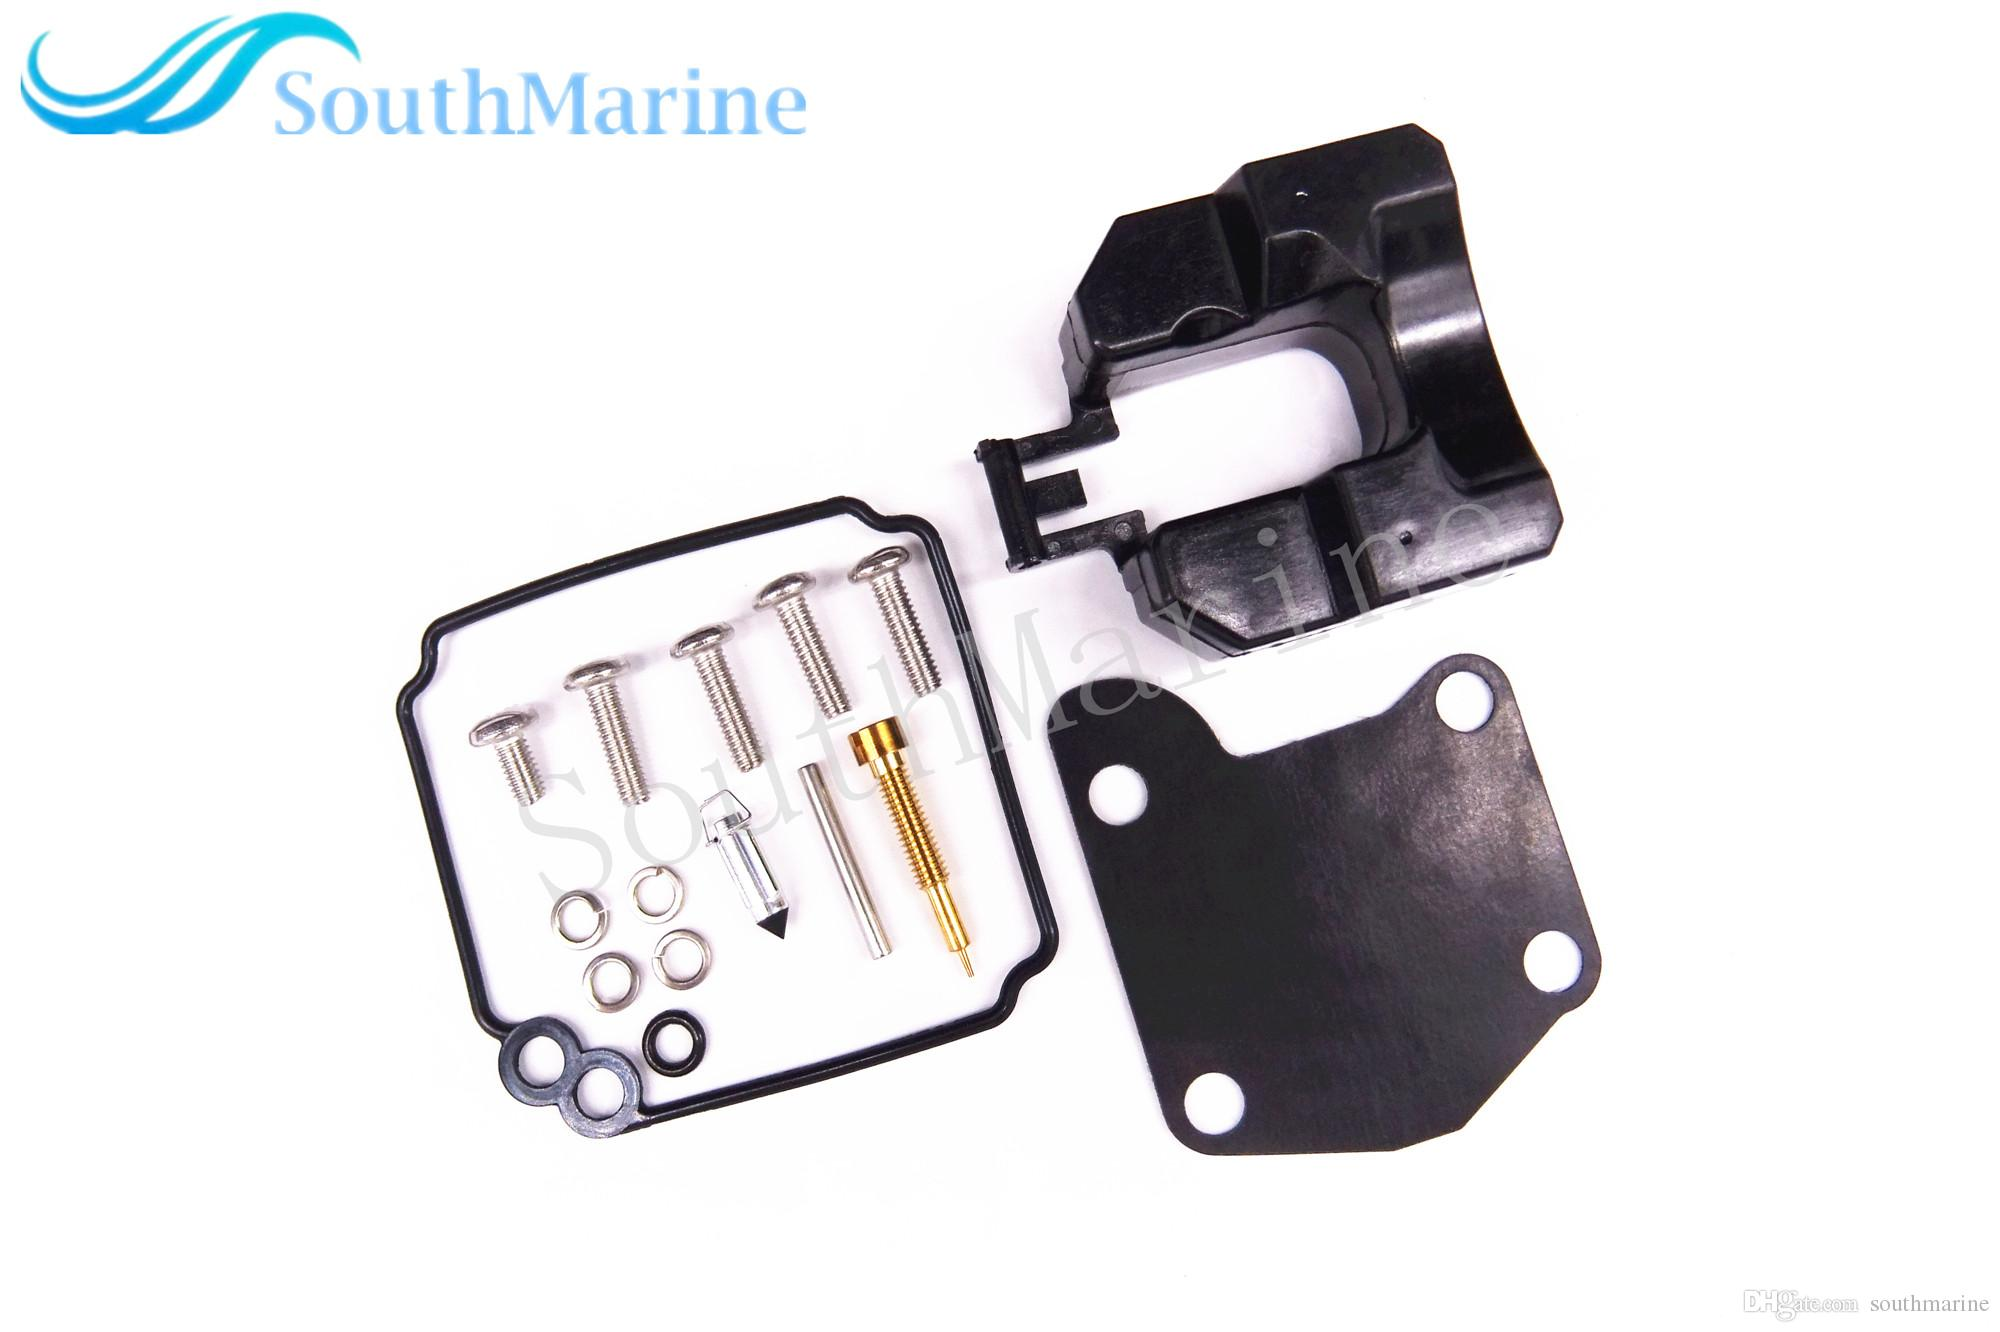 Boat Motor Carburetor Repair Kit 63V-W0093-00-00 for Yamaha 2-Stroke 9 9HP  15HP Outboard Engine